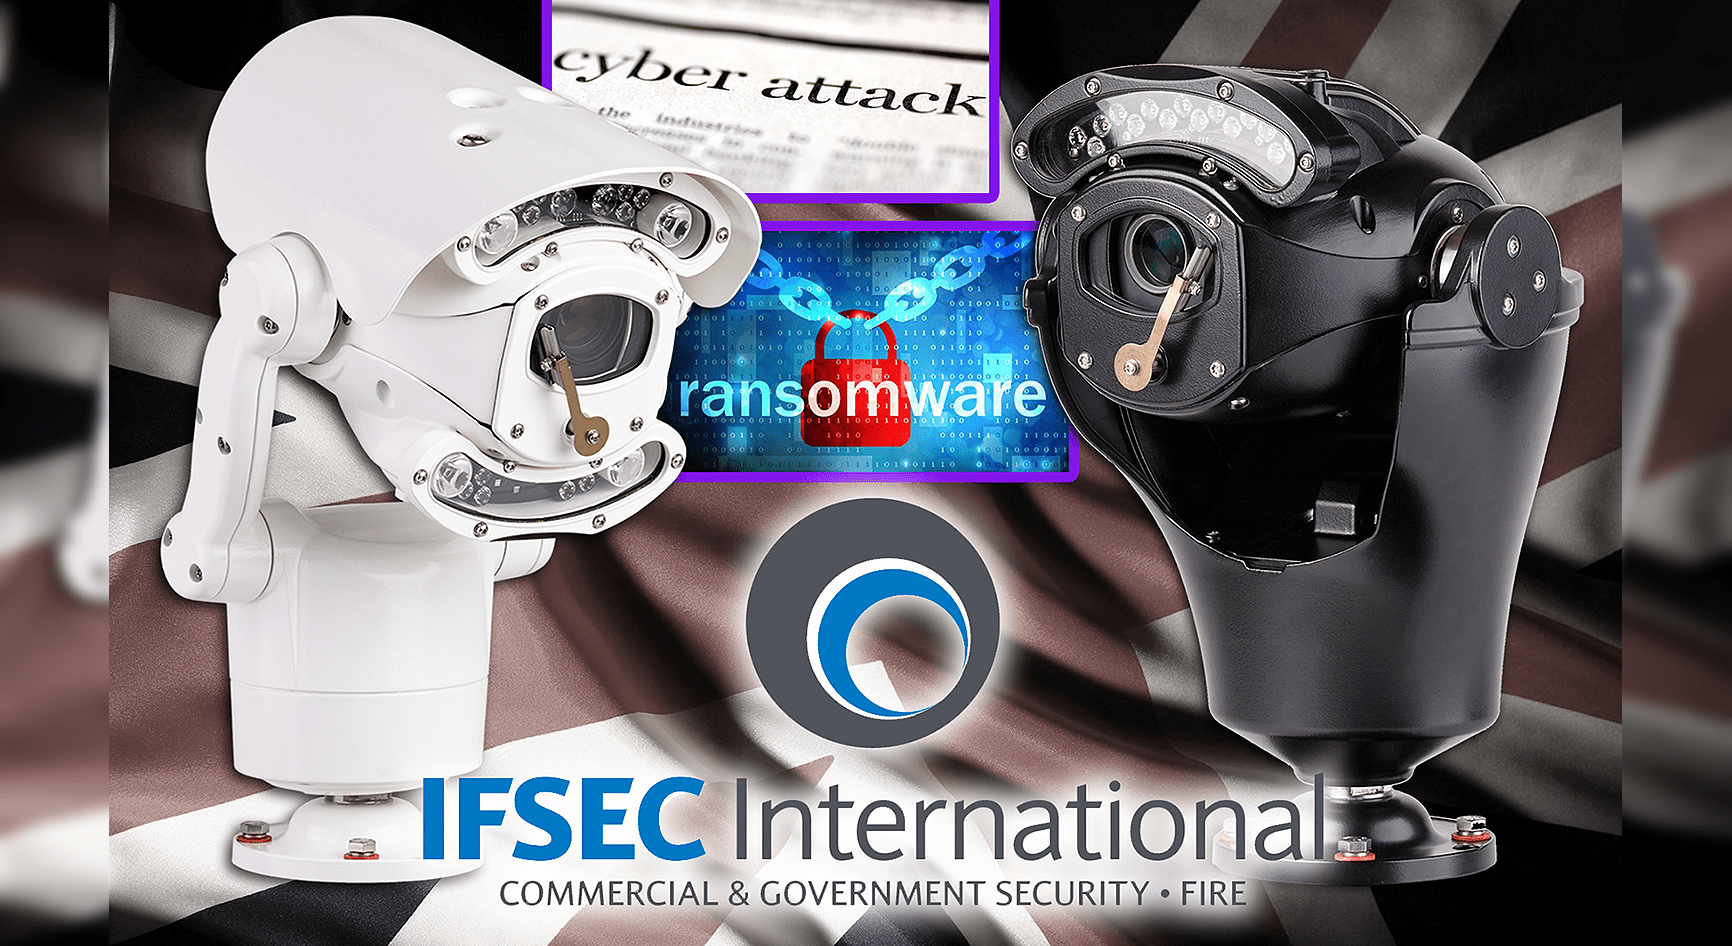 360 Vision Technology fields SSL & 802.1X encryption protected cameras at IFSEC 2017